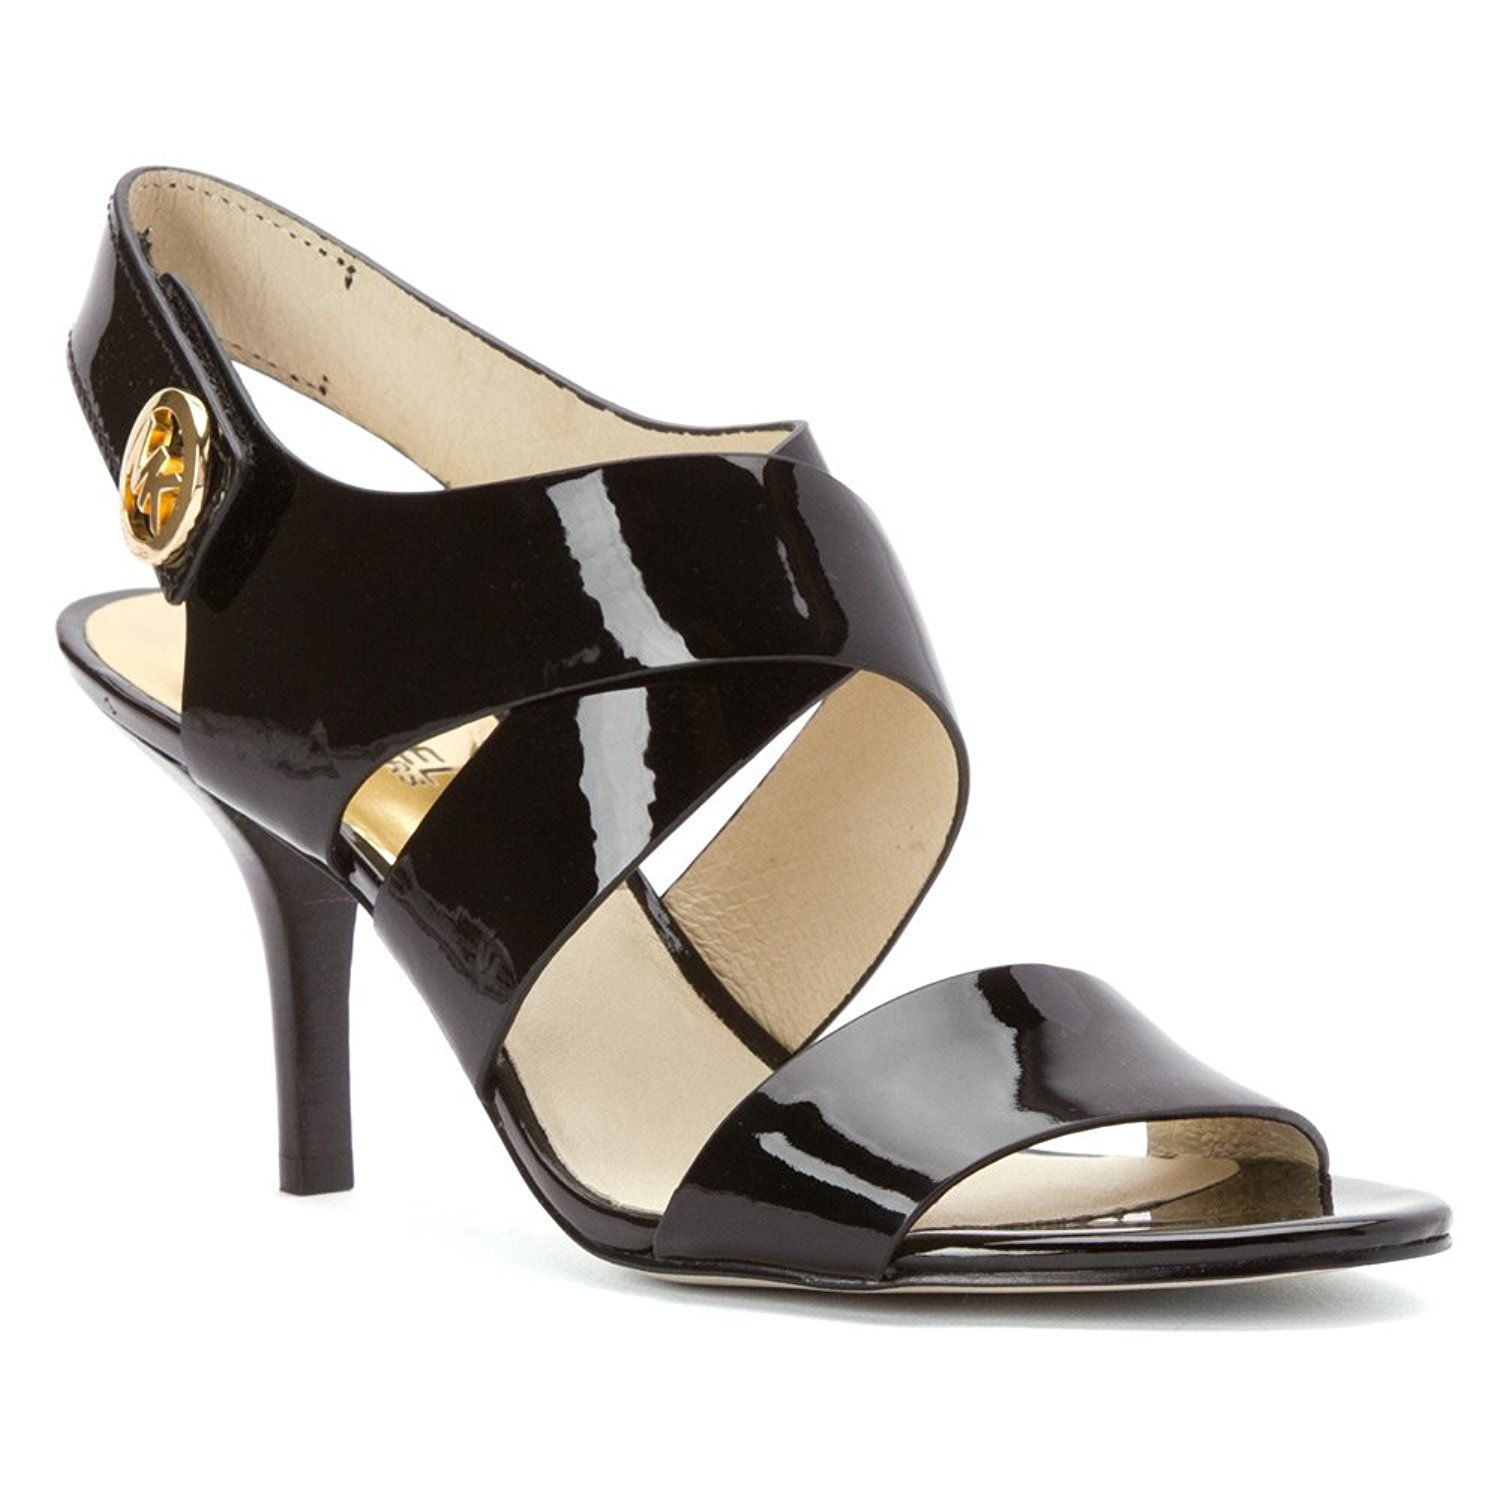 f92f180e985a MICHAEL Michael Kors Women s Joselle Open Toe Pump Black Patent 9.5 M US     See this great product.  womenshoe